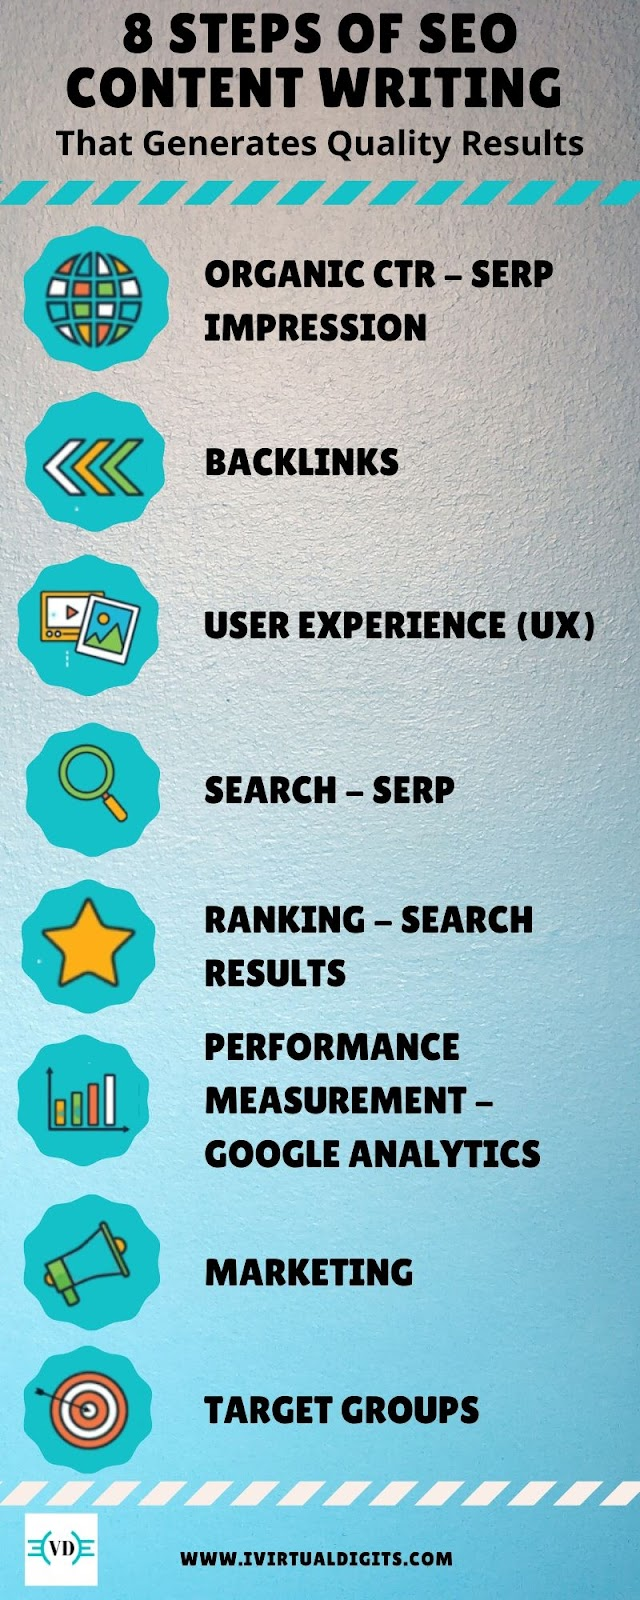 8 Steps of SEO Content Writing to Generate Quality Results